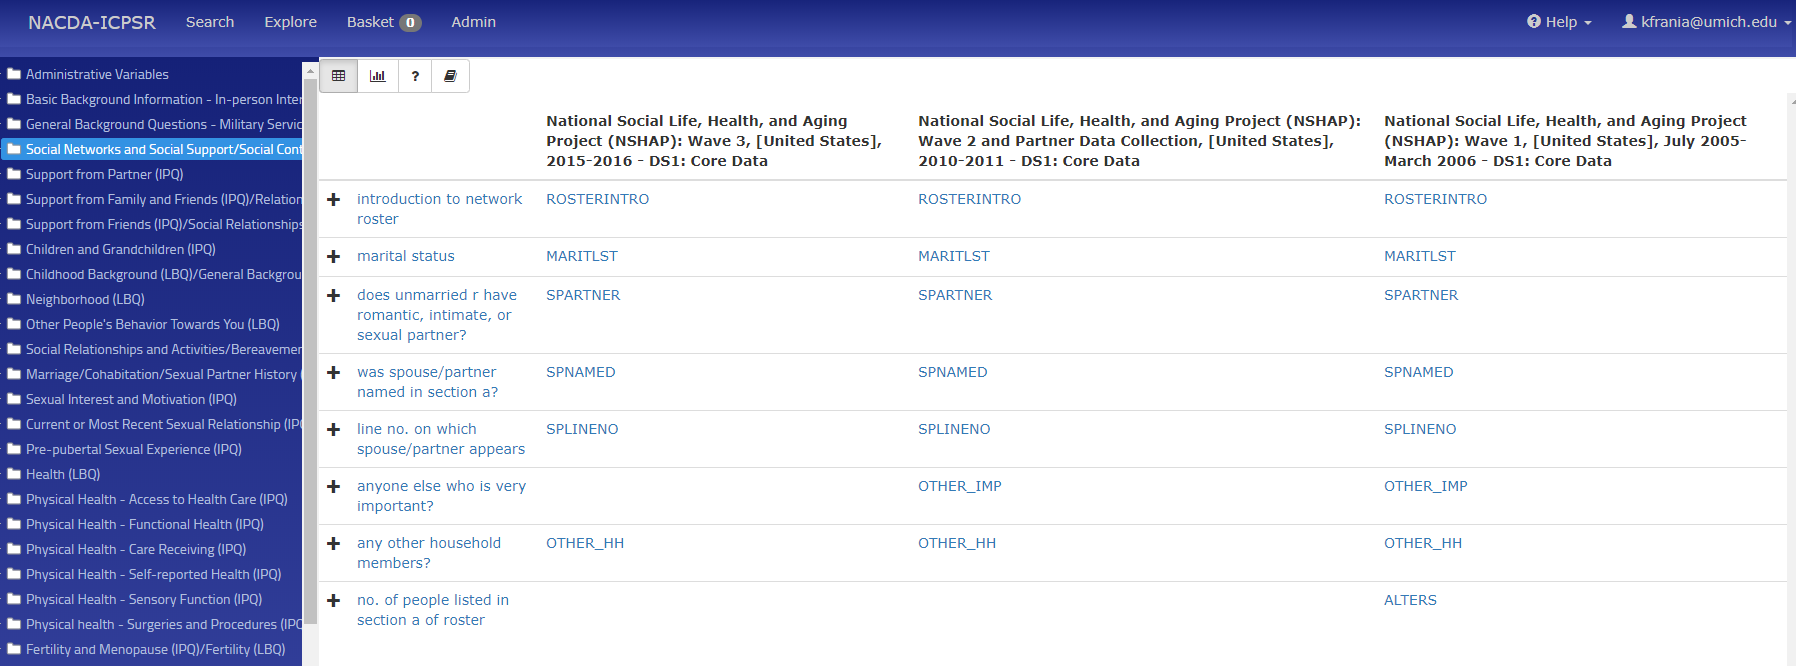 Screen capture of the NACDA-ICPSR portal with the NSHAP data - exploring social network variables across waves 1-3